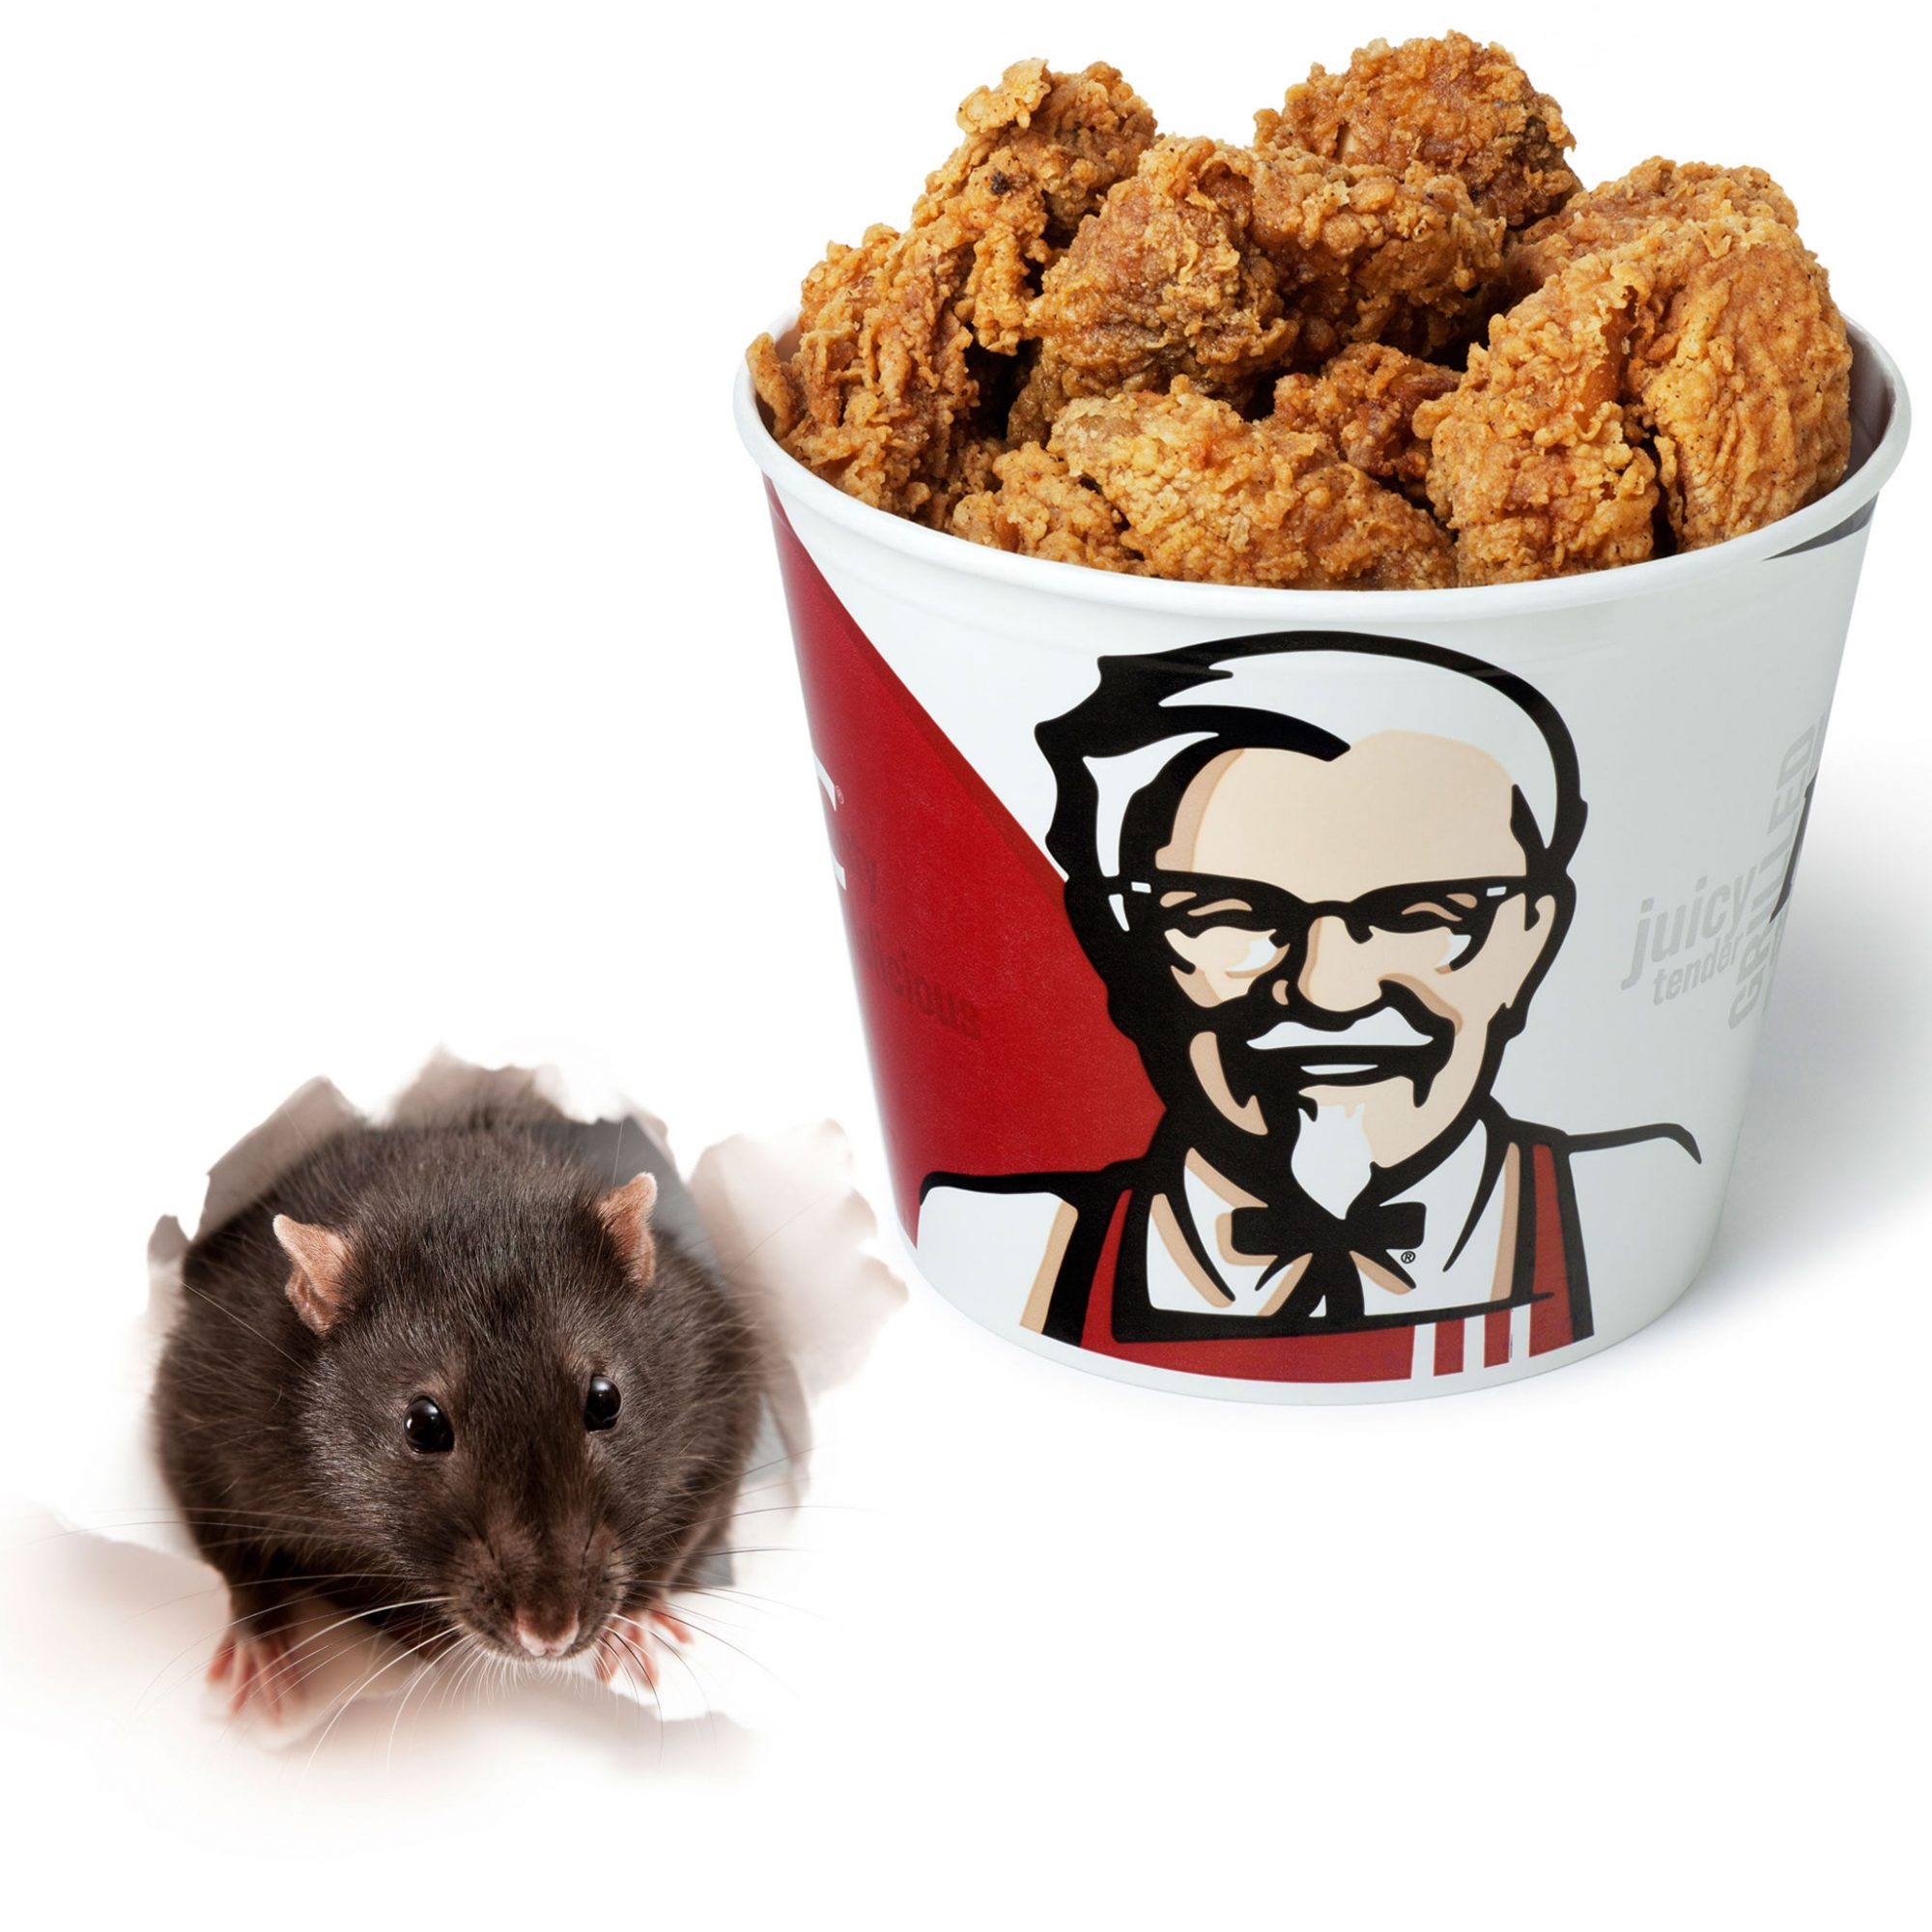 The Deep-Fried Rat From KFC Is Almost Certainly Not a Deep-Fried Rat ...